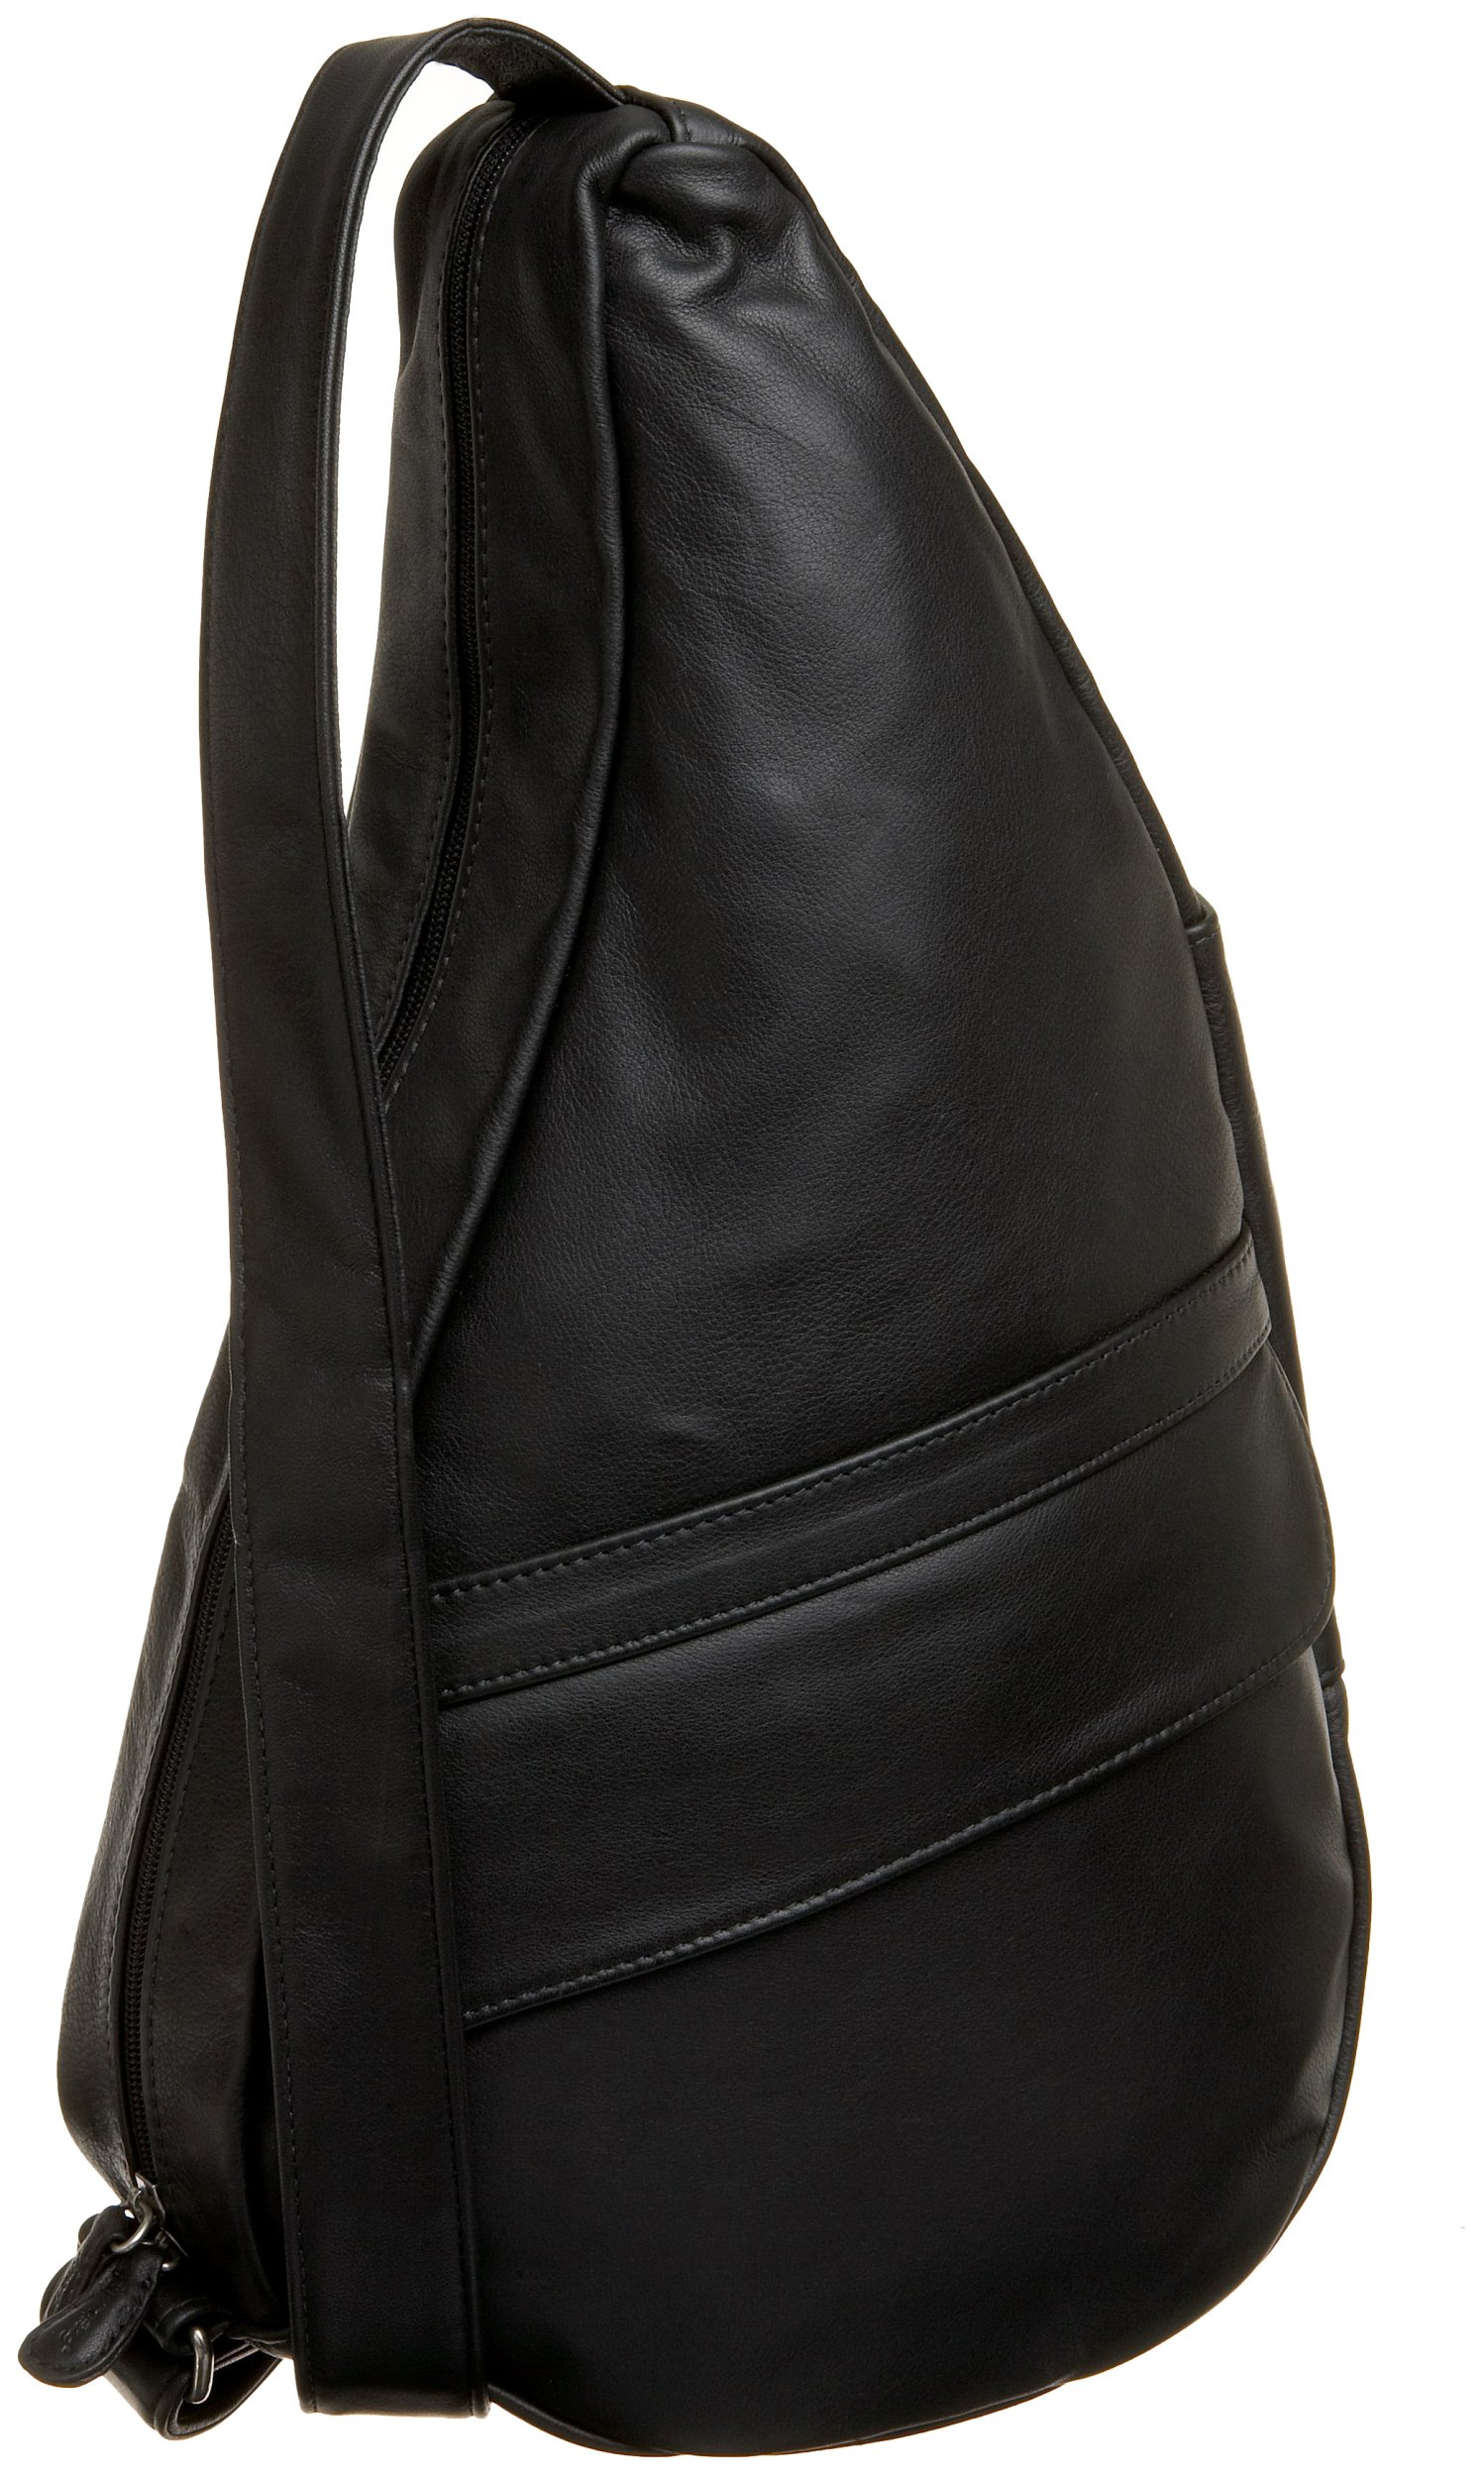 AmeriBag Classic Leather Healthy Back Bag tote Medium,Black,one size